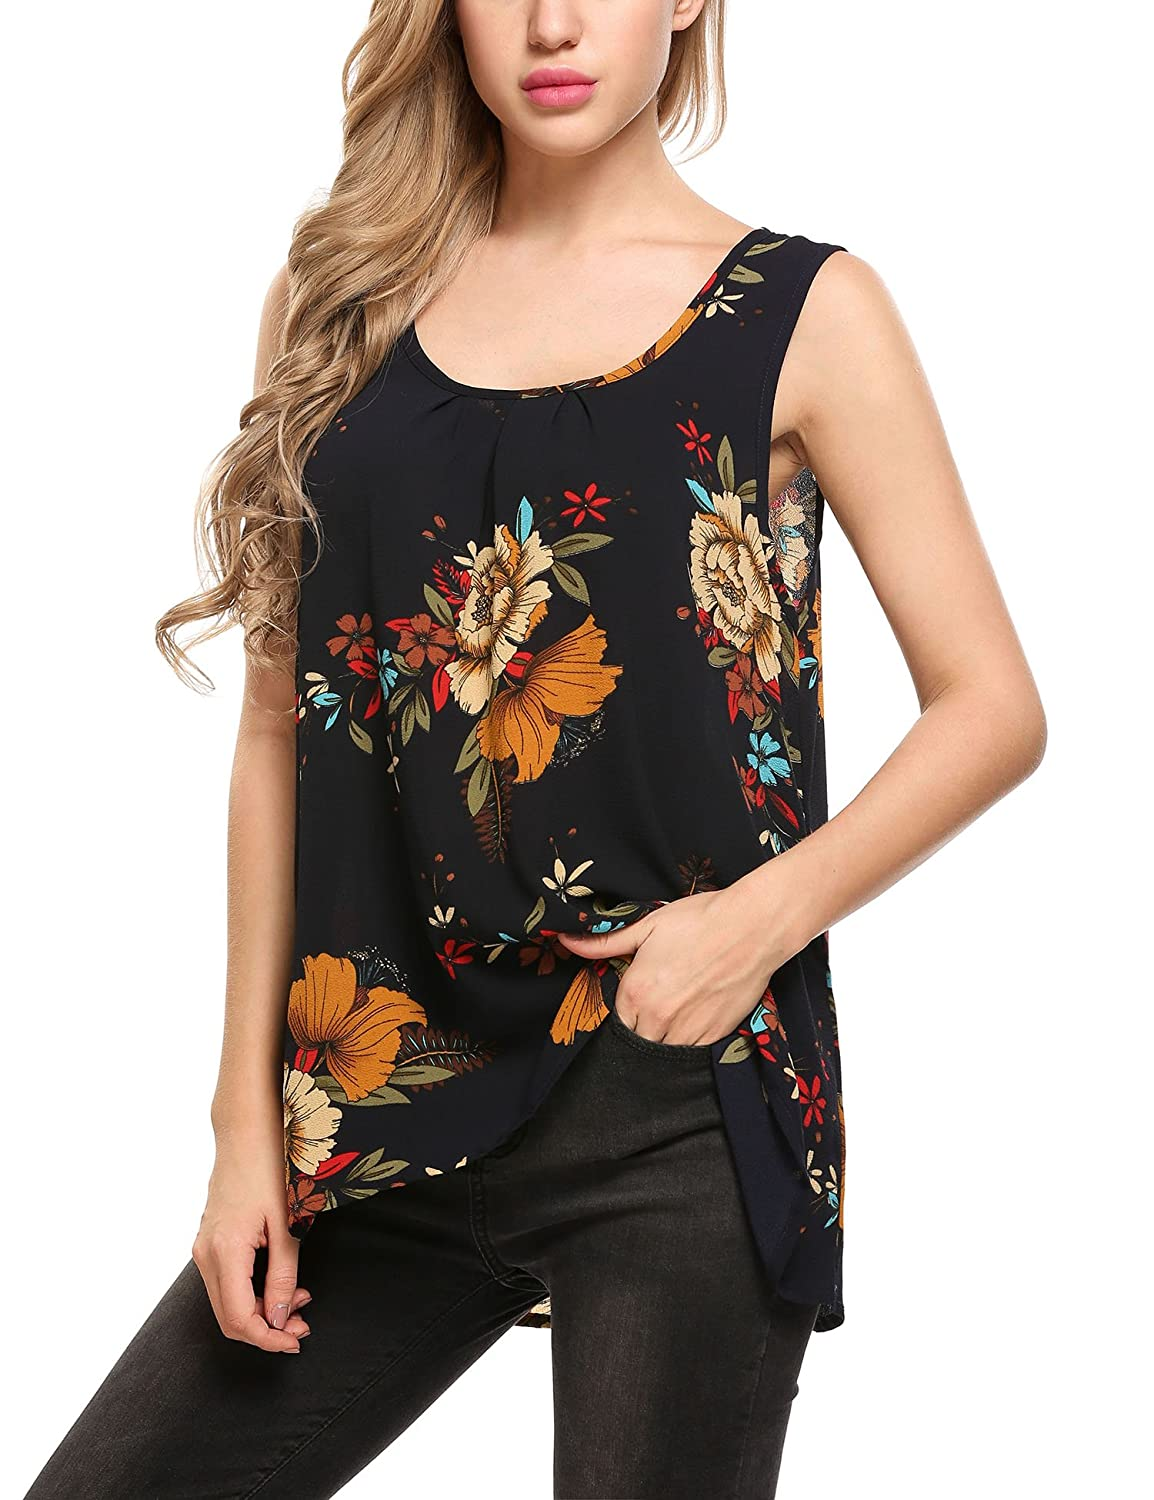 6a00a6cf2848e Zeagoo Women s Floral Print Loose Casual Flowy Tunic Tank Top at Amazon  Women s Clothing store